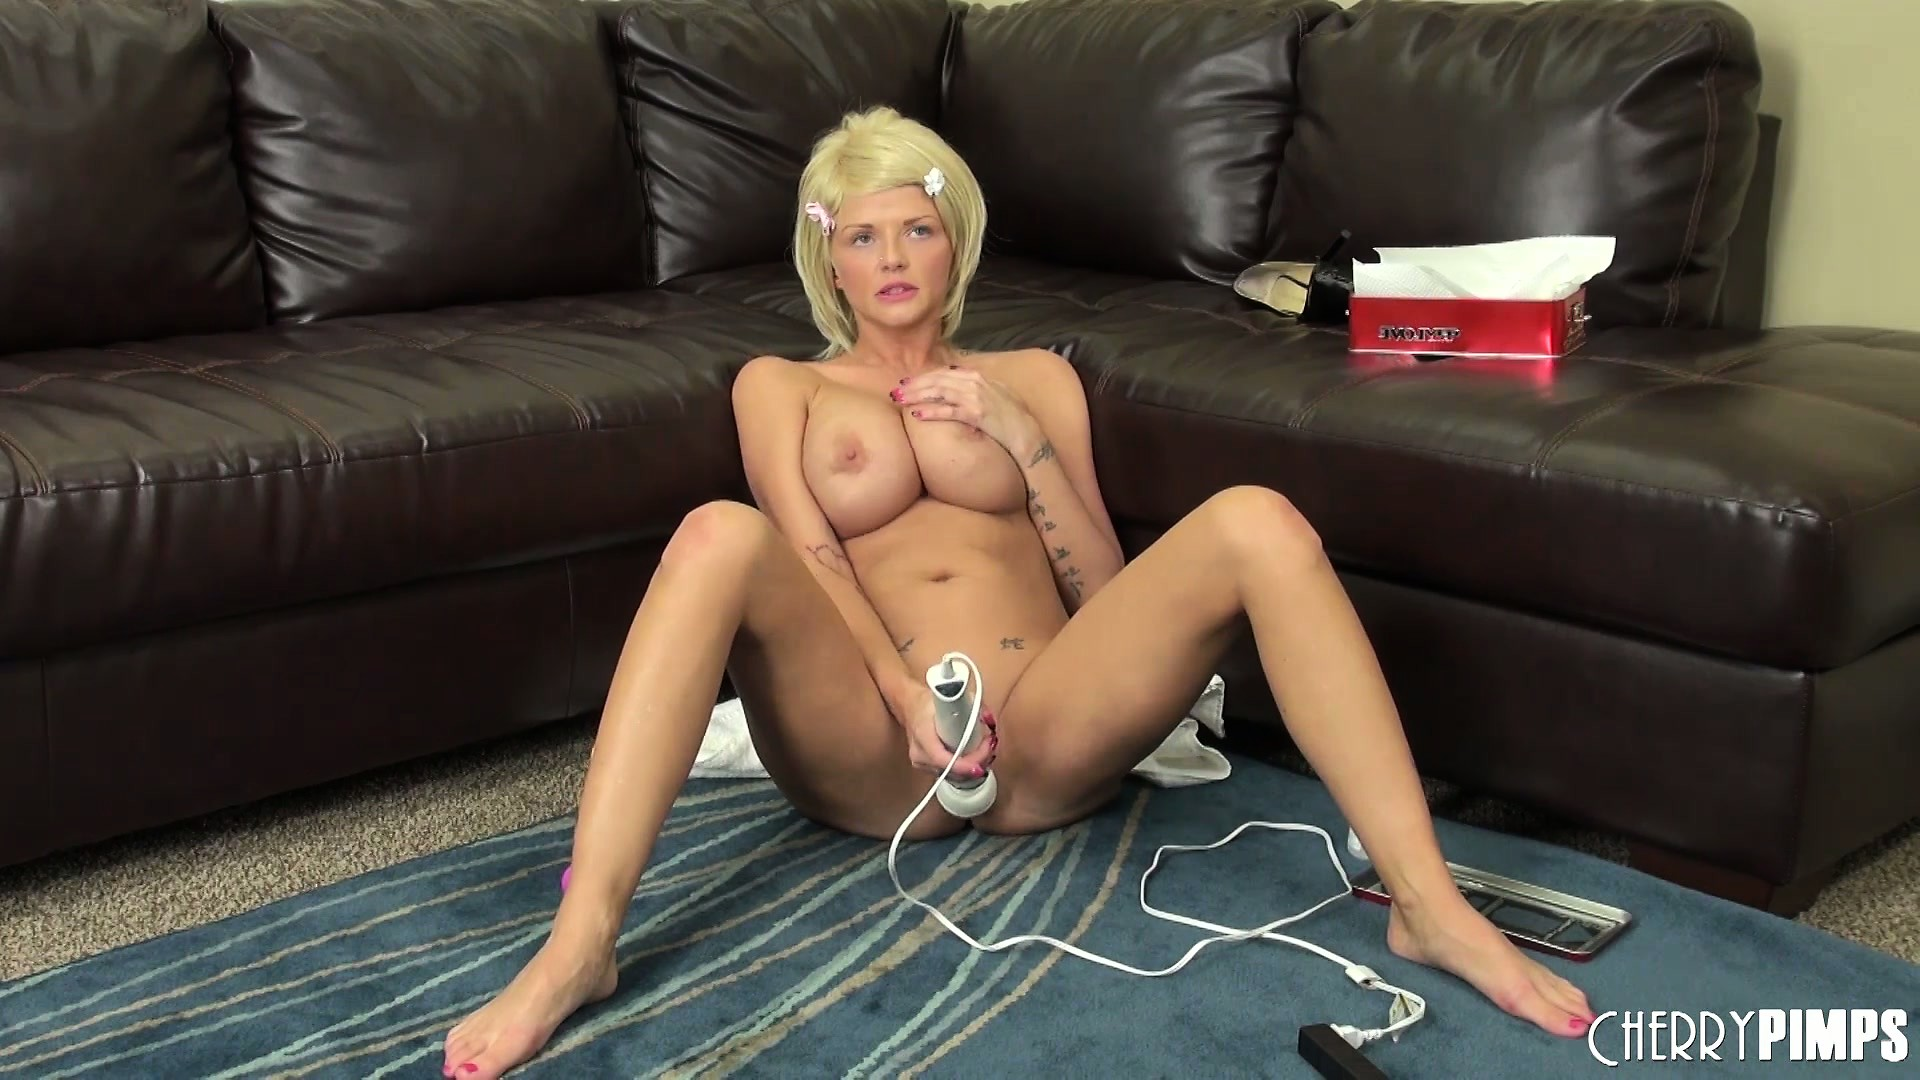 Porn Tube of Busty Blonde Joslyn Toys Her Pussy And Vibrates Her Clit On The Couch, Then Gets On The Floor